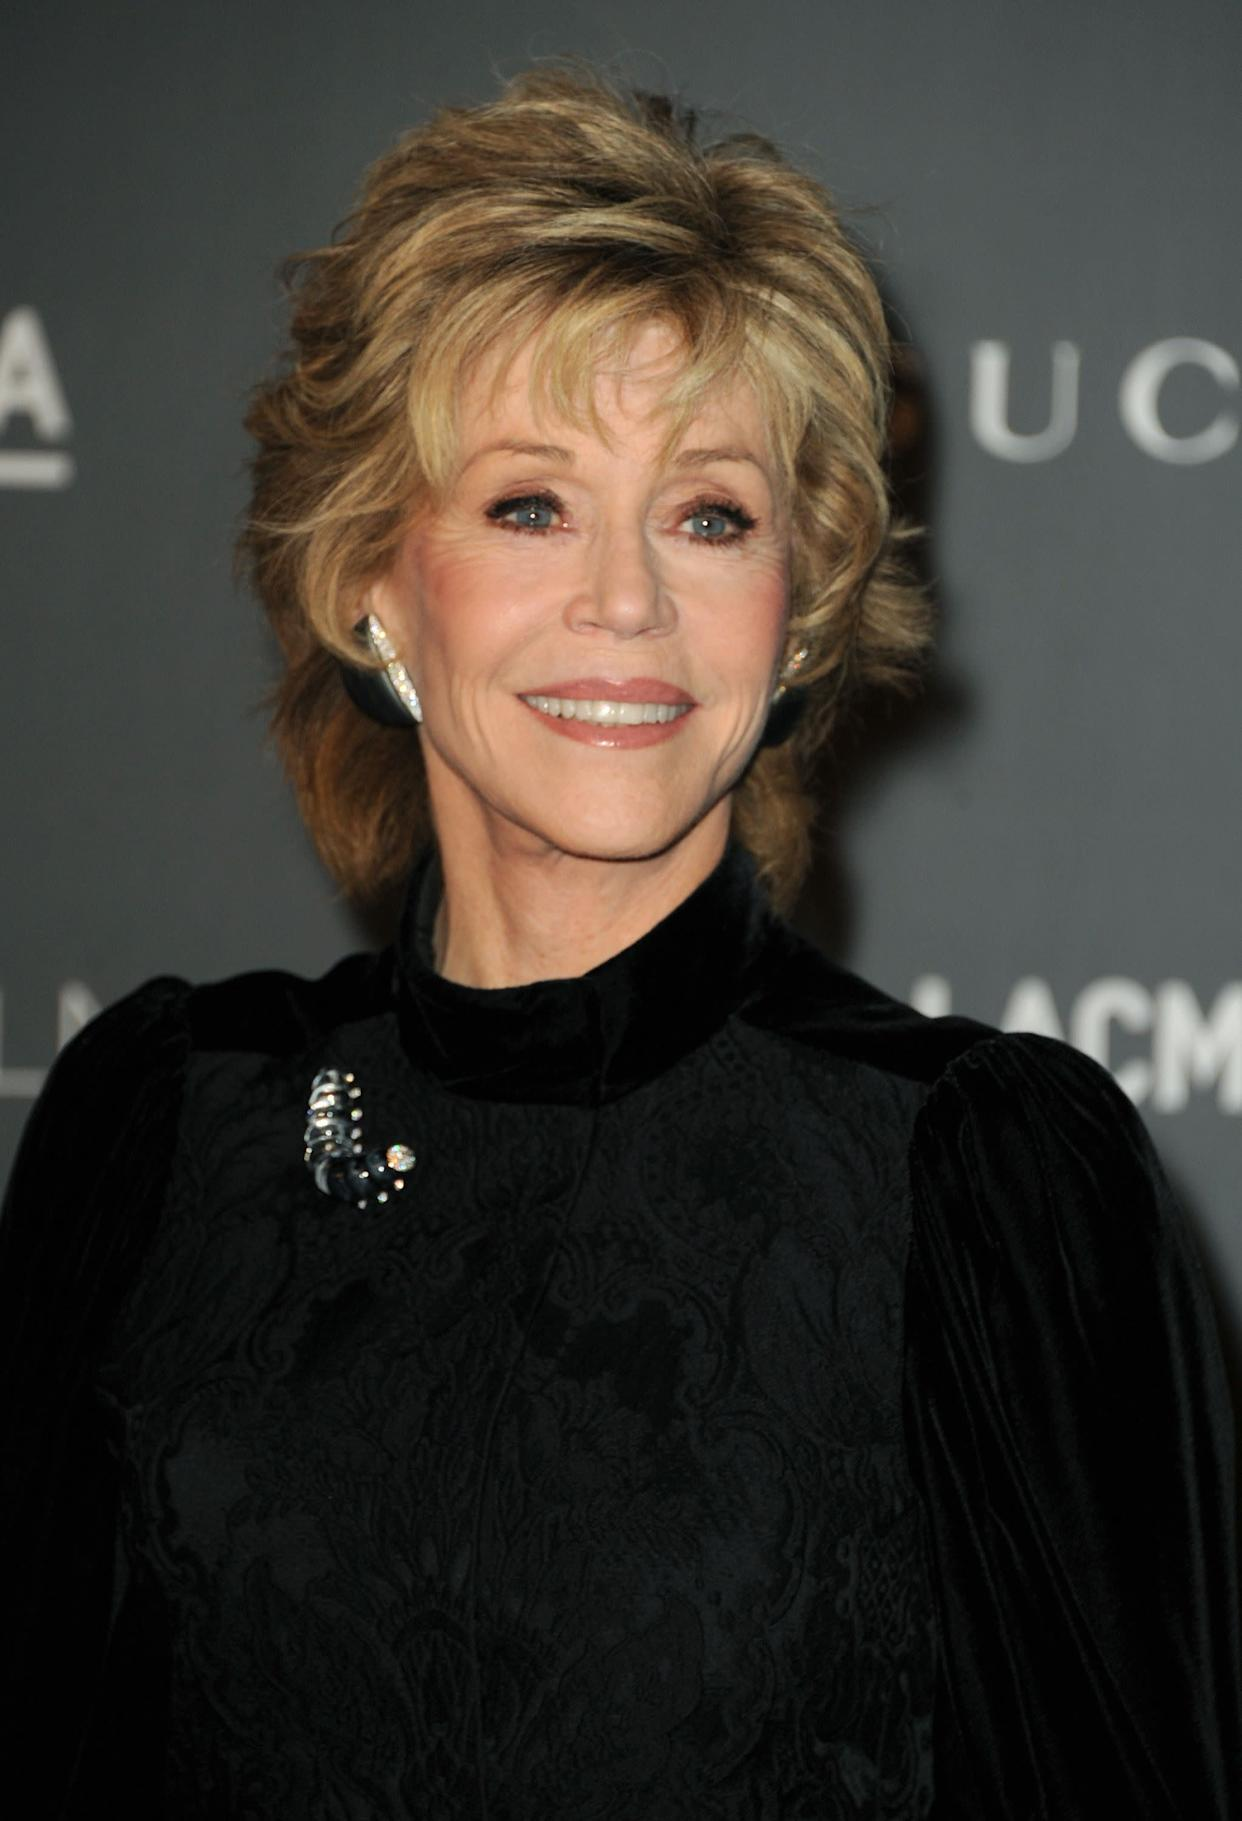 """""""At 74, I have never had such a fulfilling sex life,"""" <a href=""""http://www.huffingtonpost.com/2012/07/10/jane-fonda-sex-life_n_1661999.html"""" rel=""""nofollow noopener"""" target=""""_blank"""" data-ylk=""""slk:Fonda told Hello! magazine"""" class=""""link rapid-noclick-resp"""">Fonda told Hello! magazine</a>. """"The only thing I have never known is true intimacy with a man. I absolutely wanted to discover that before dying. It has happened with Richard, I feel totally secure with him. Often, when we make love, I see him as he was 30 years ago."""""""